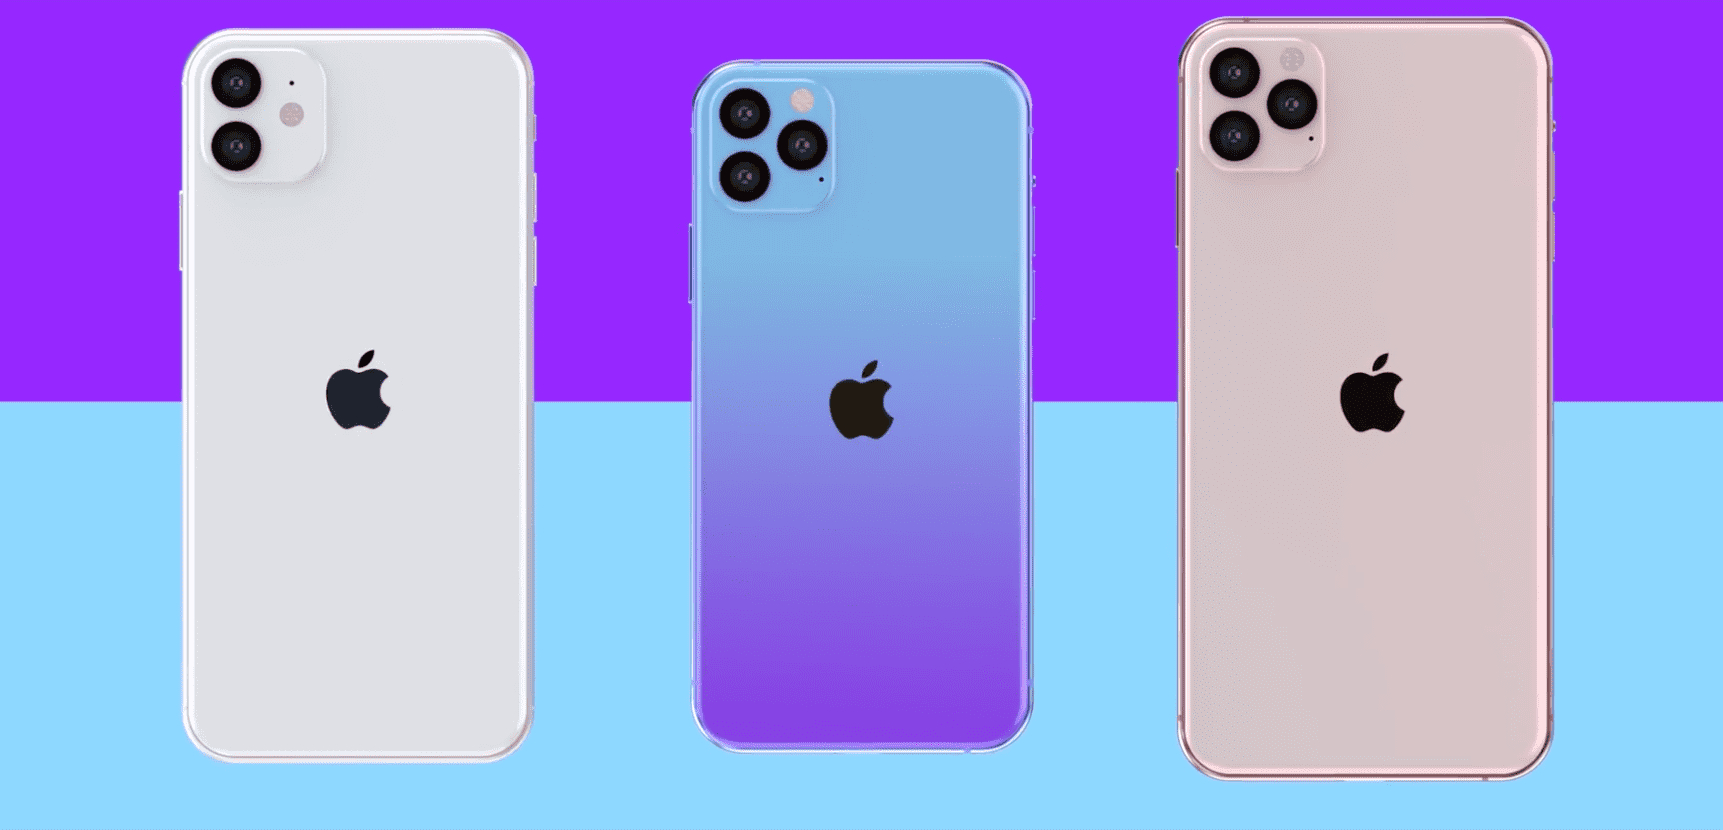 Iphone 11 Pro Rainbow Color Iphone 11 New Green Color Rumors Img 5